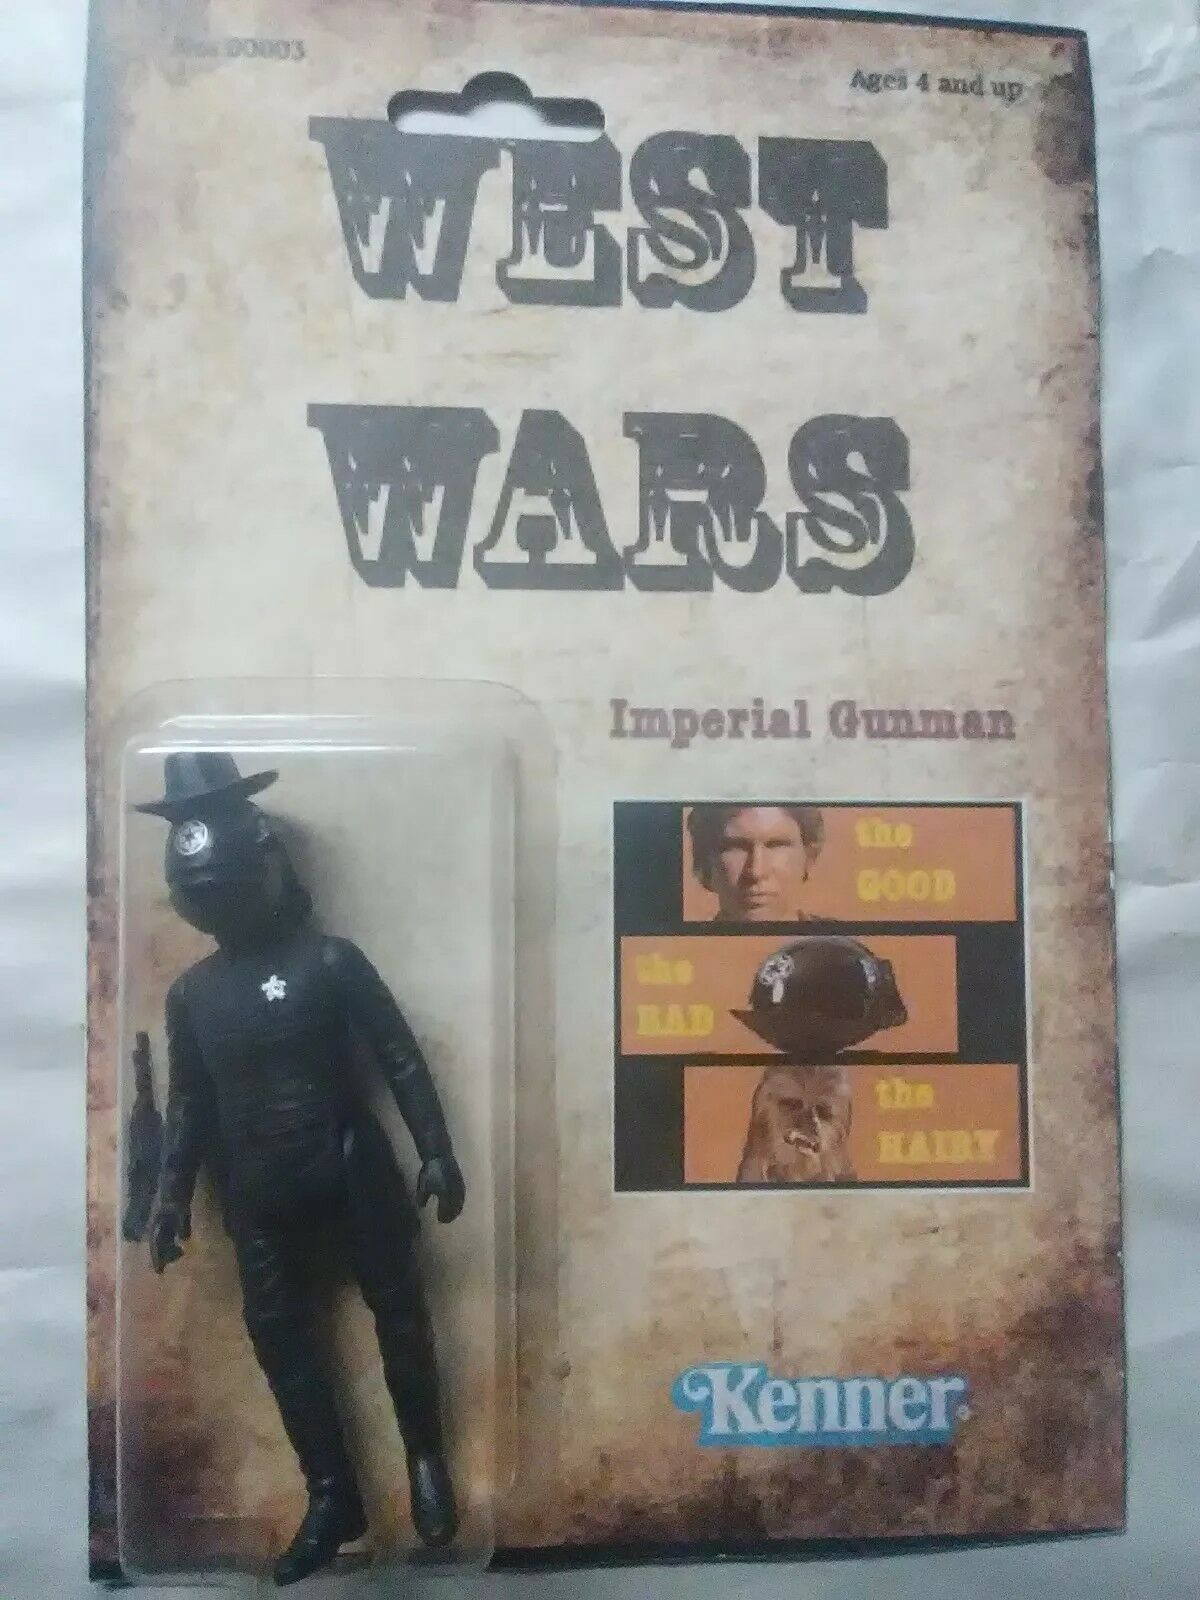 IMPERIAL GUNMAN WESTERN DKE KILLER StiefelLEG FIGURE STAR WARS FAR FAR WEST WARS1 1